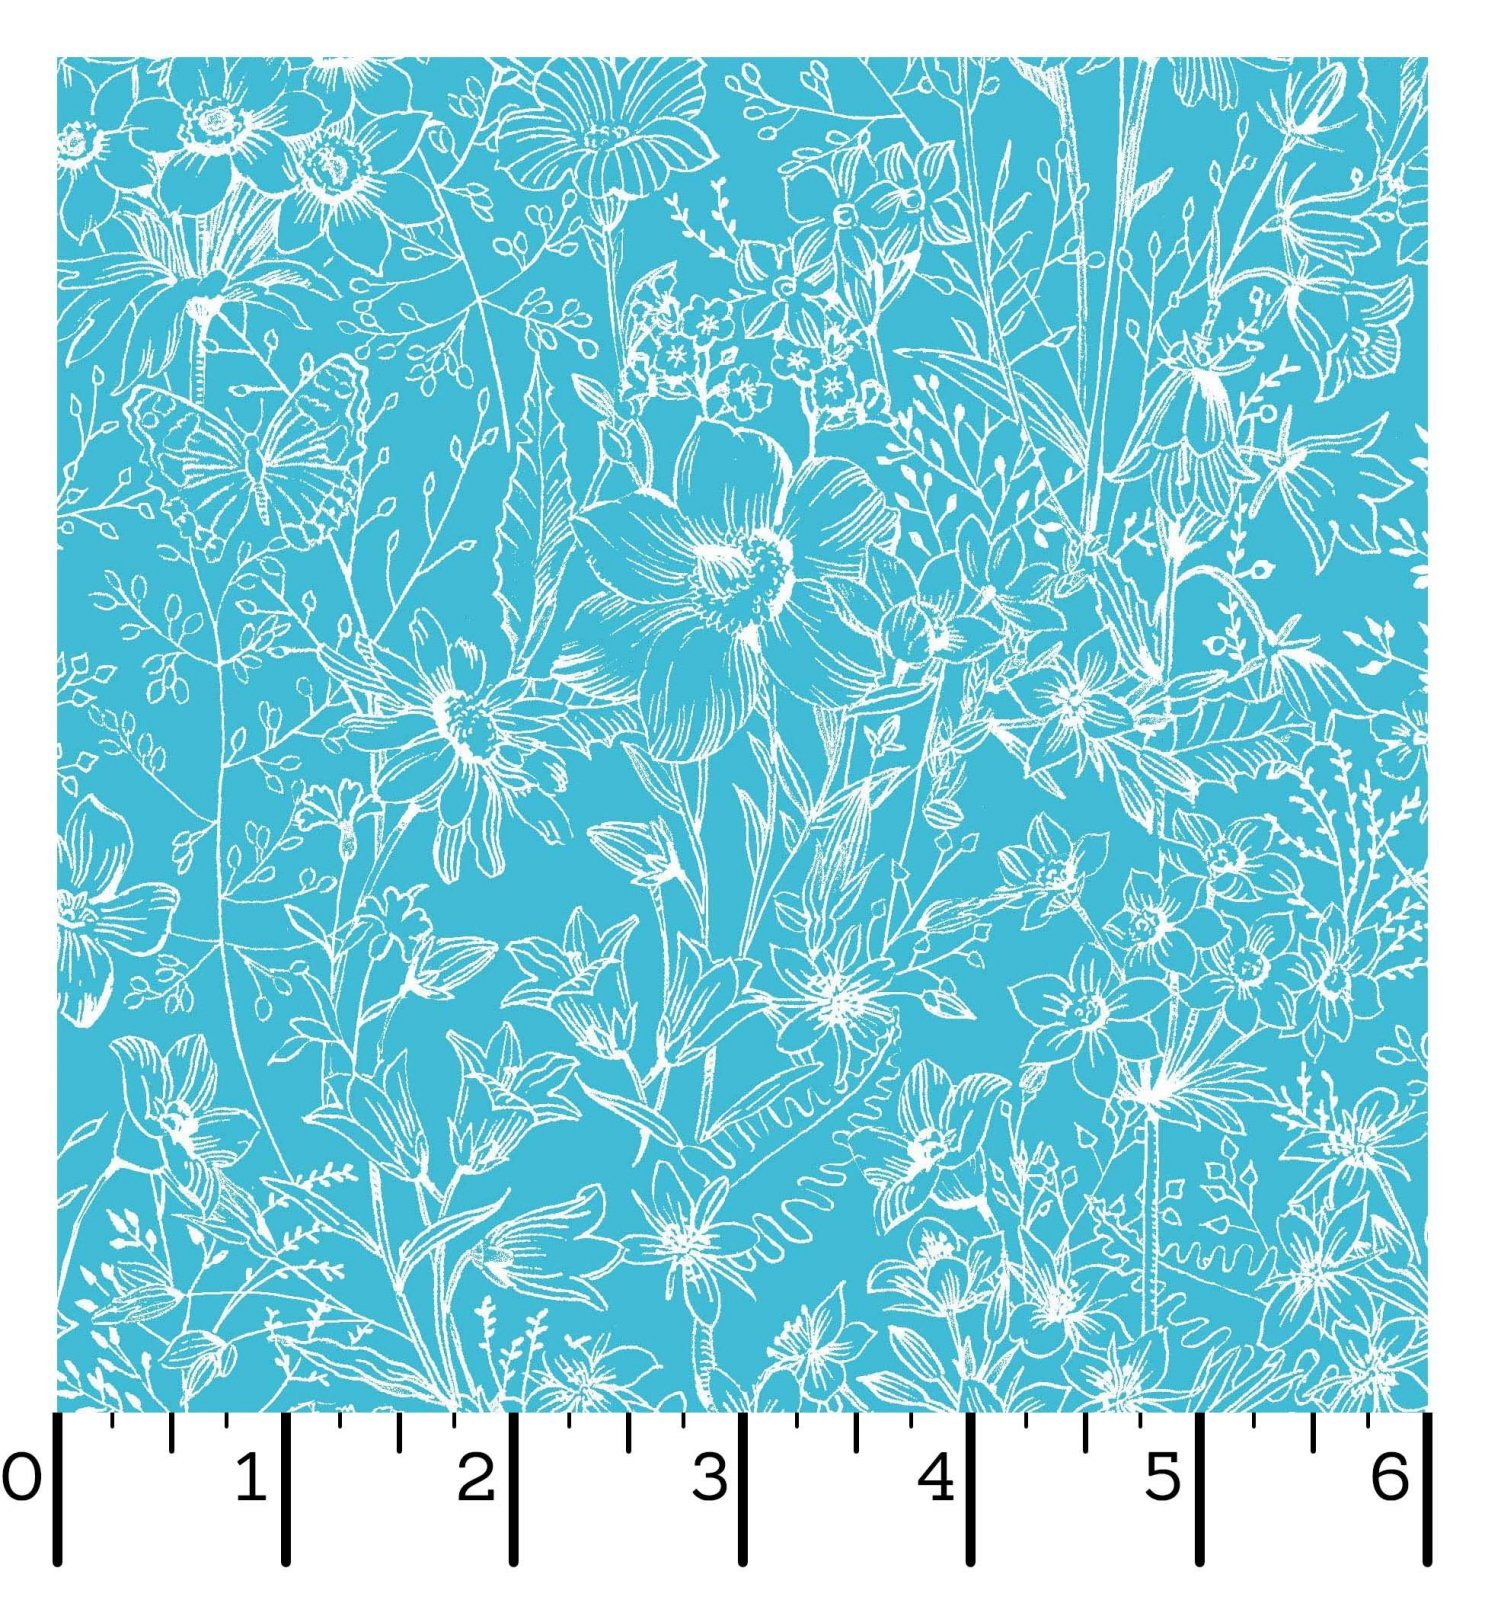 EESC-D10006 Q - MEADOW EDGE BY MAYWOOD STUDIO MEADOW TOILE AQUA - ARRIVING IN MAY 2021